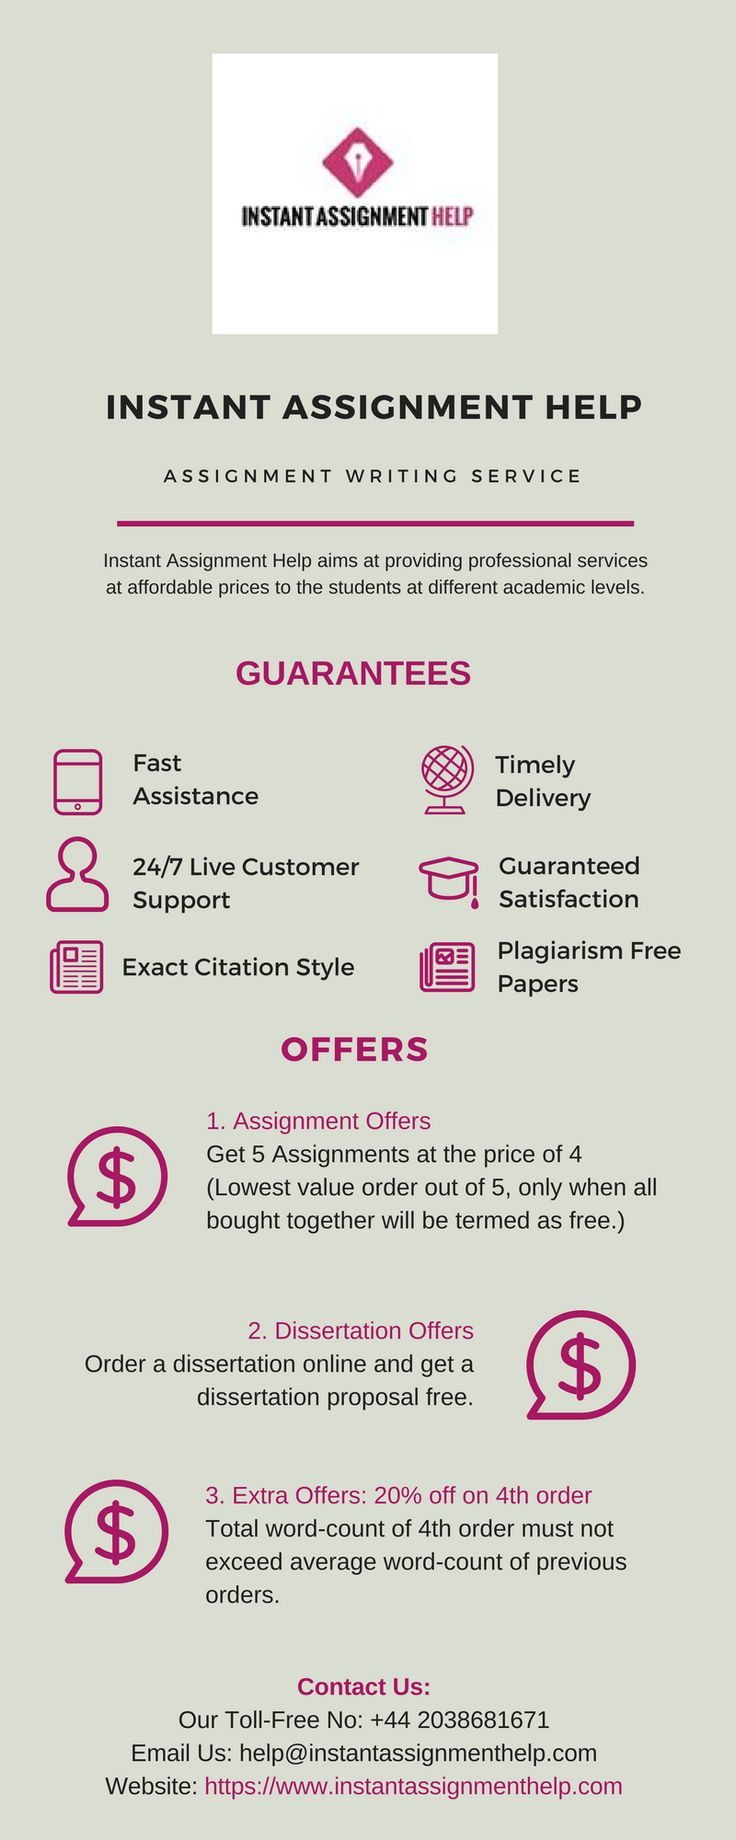 best ideas about instant assignment help writing review and instant assignment help is providing assignment writing services to the students across the world at affordable